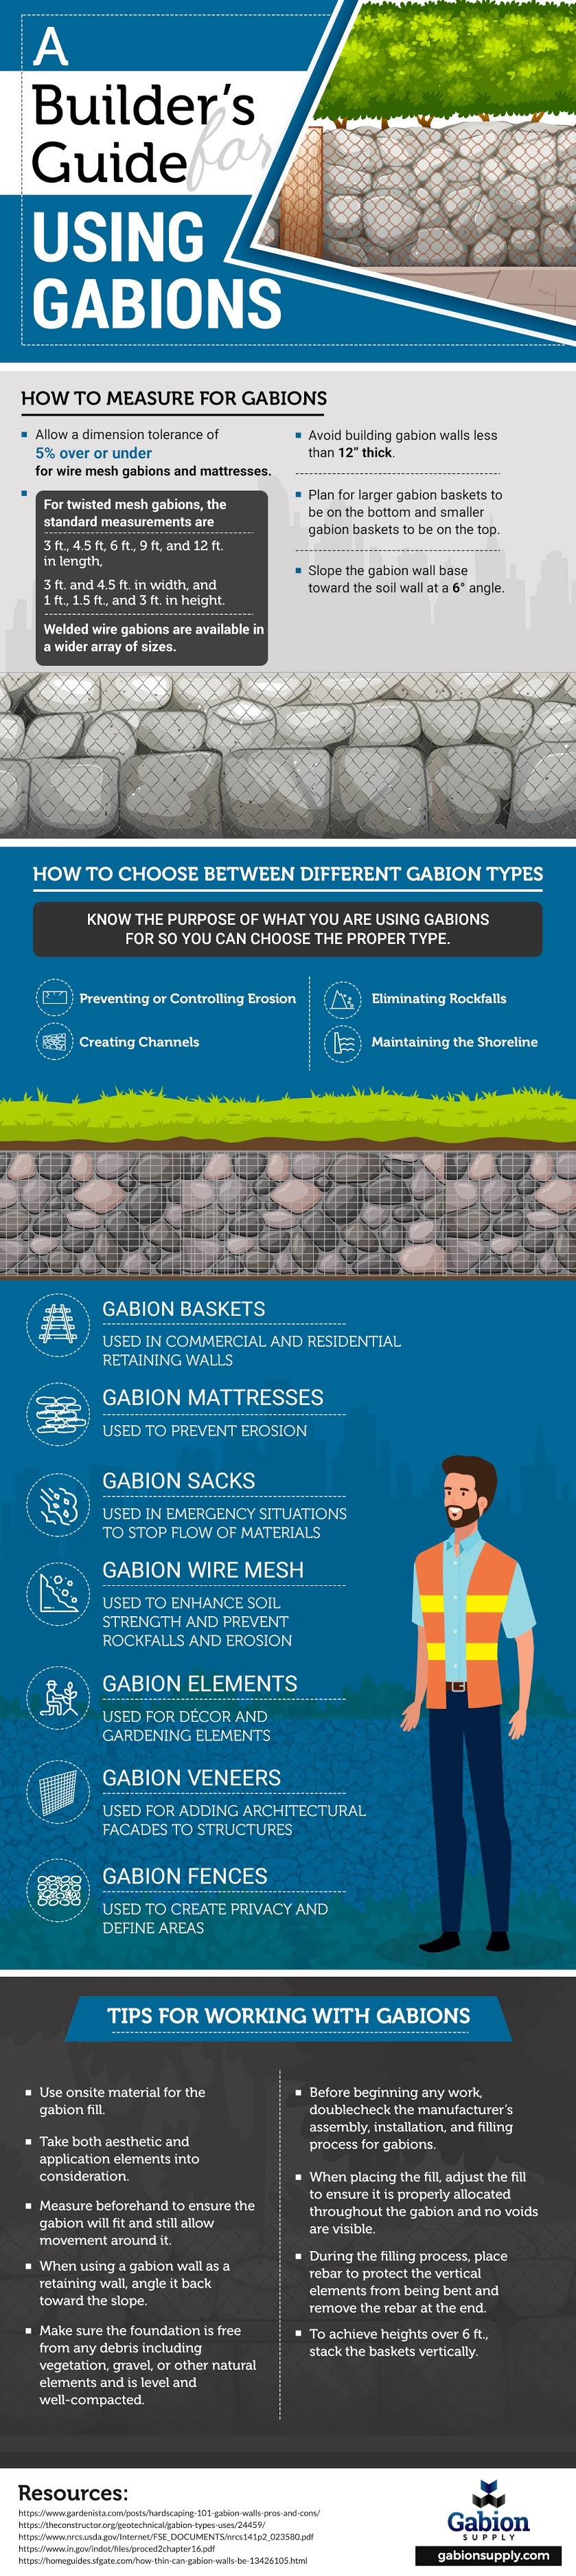 A Builder's Guide for Using Gabions #Infographic